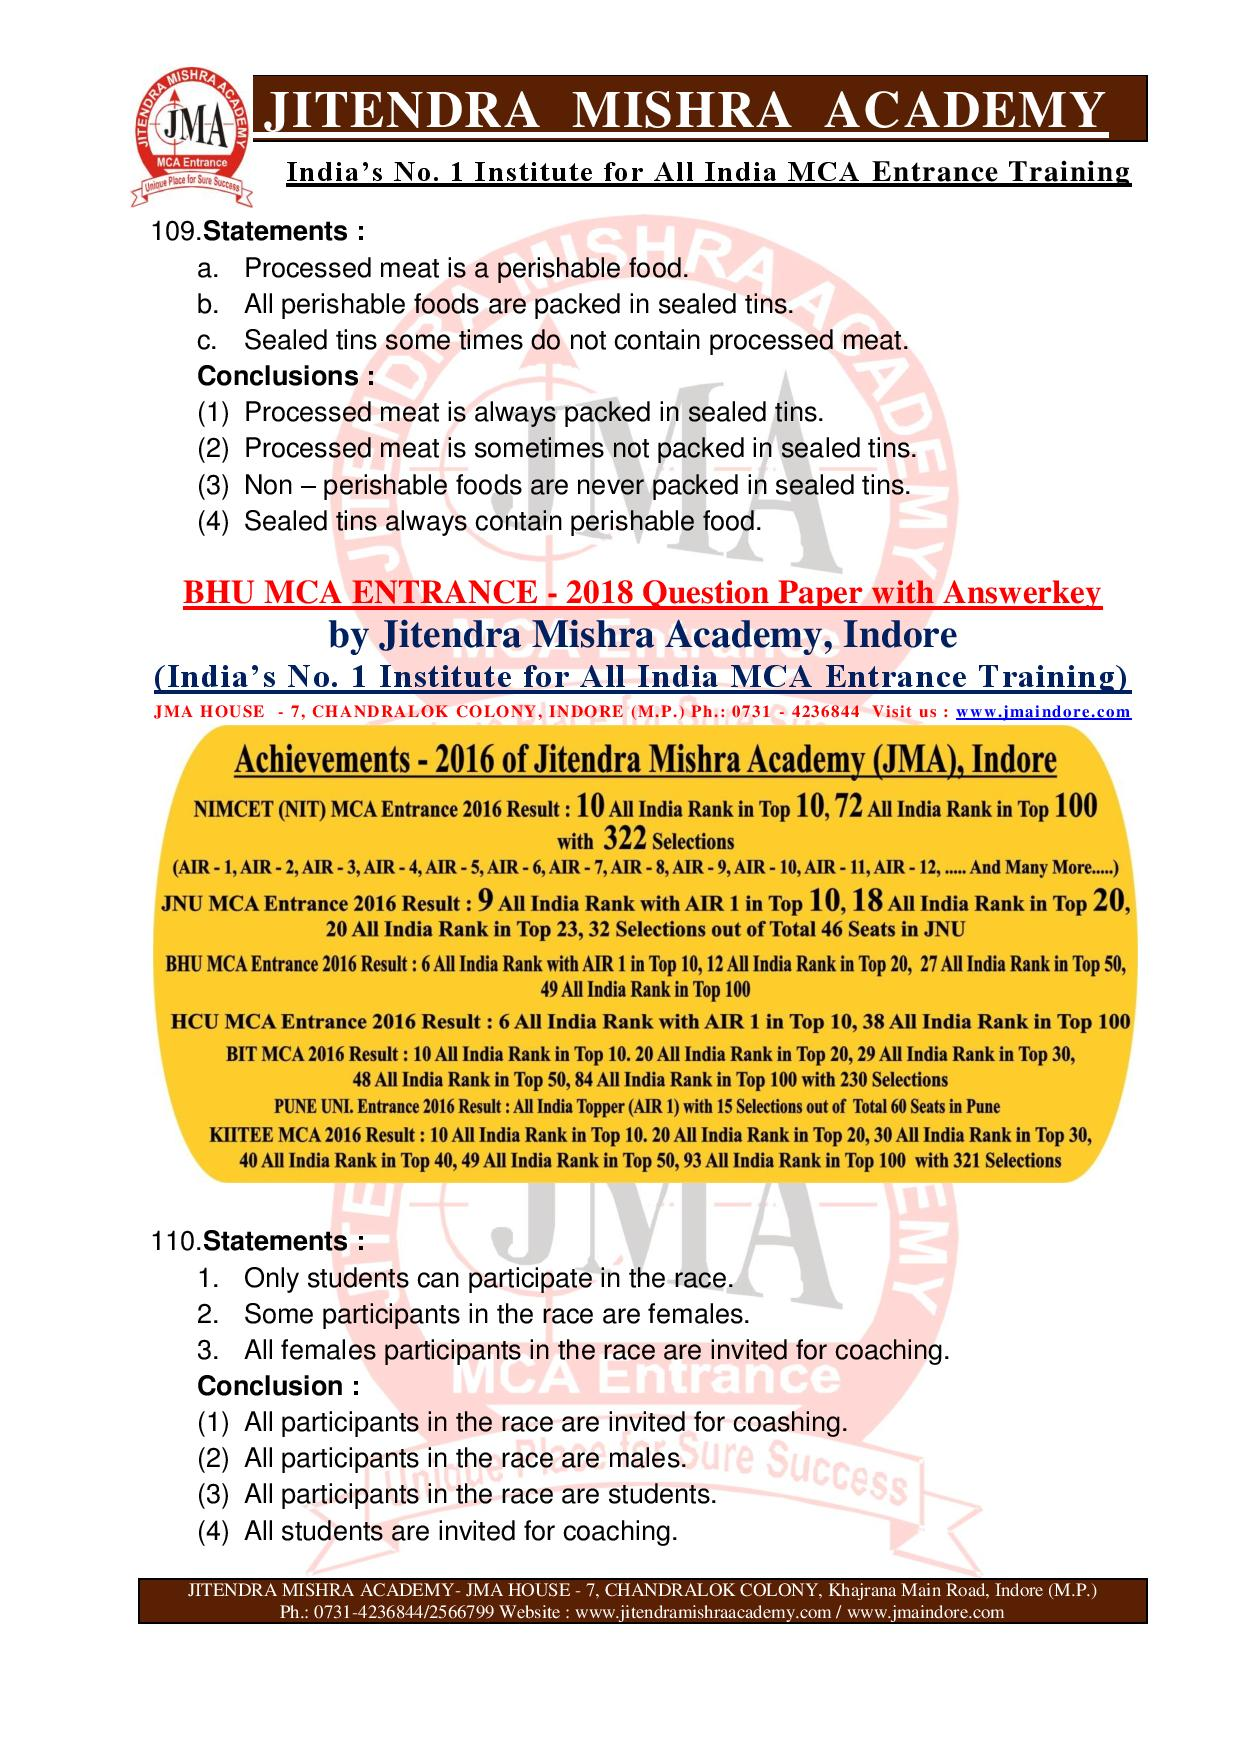 BHU MCA 2018 QUESTION PAPER12-page-034